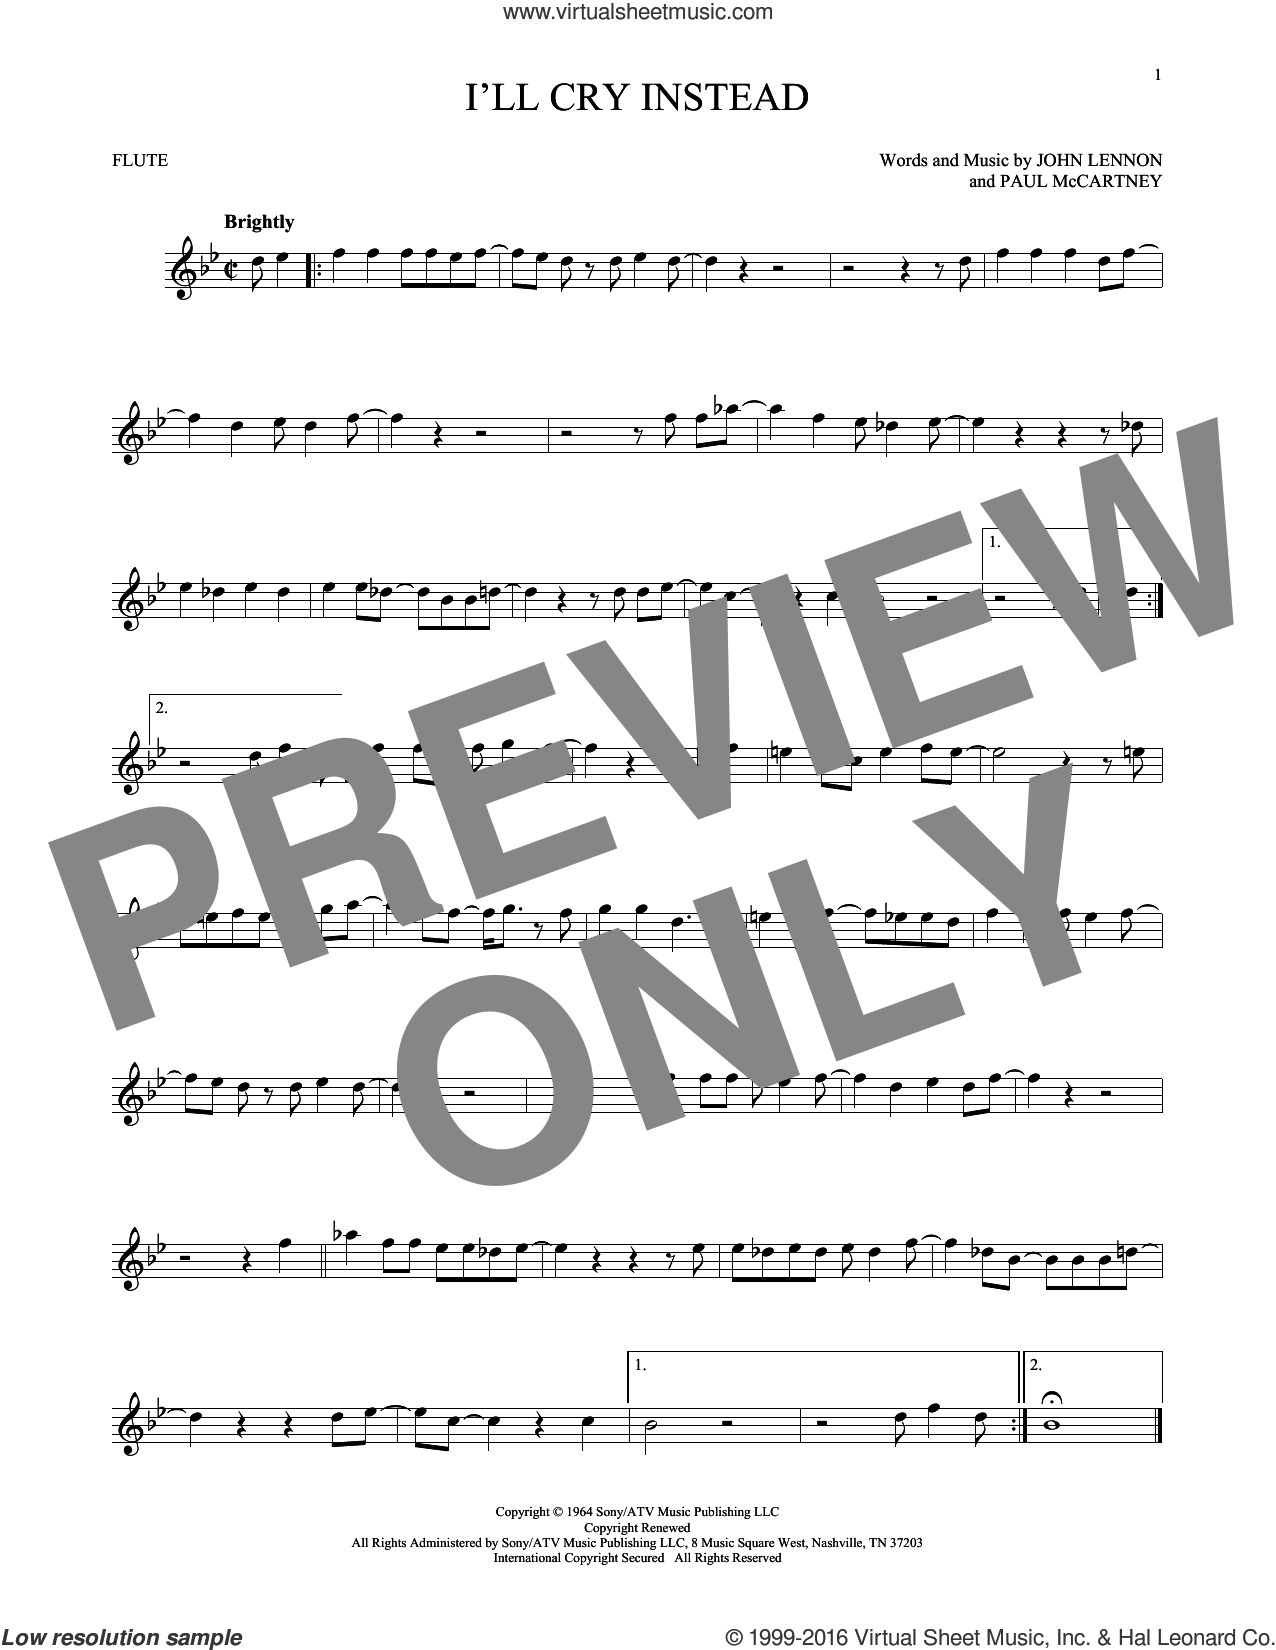 I'll Cry Instead sheet music for flute solo by The Beatles, John Lennon and Paul McCartney. Score Image Preview.